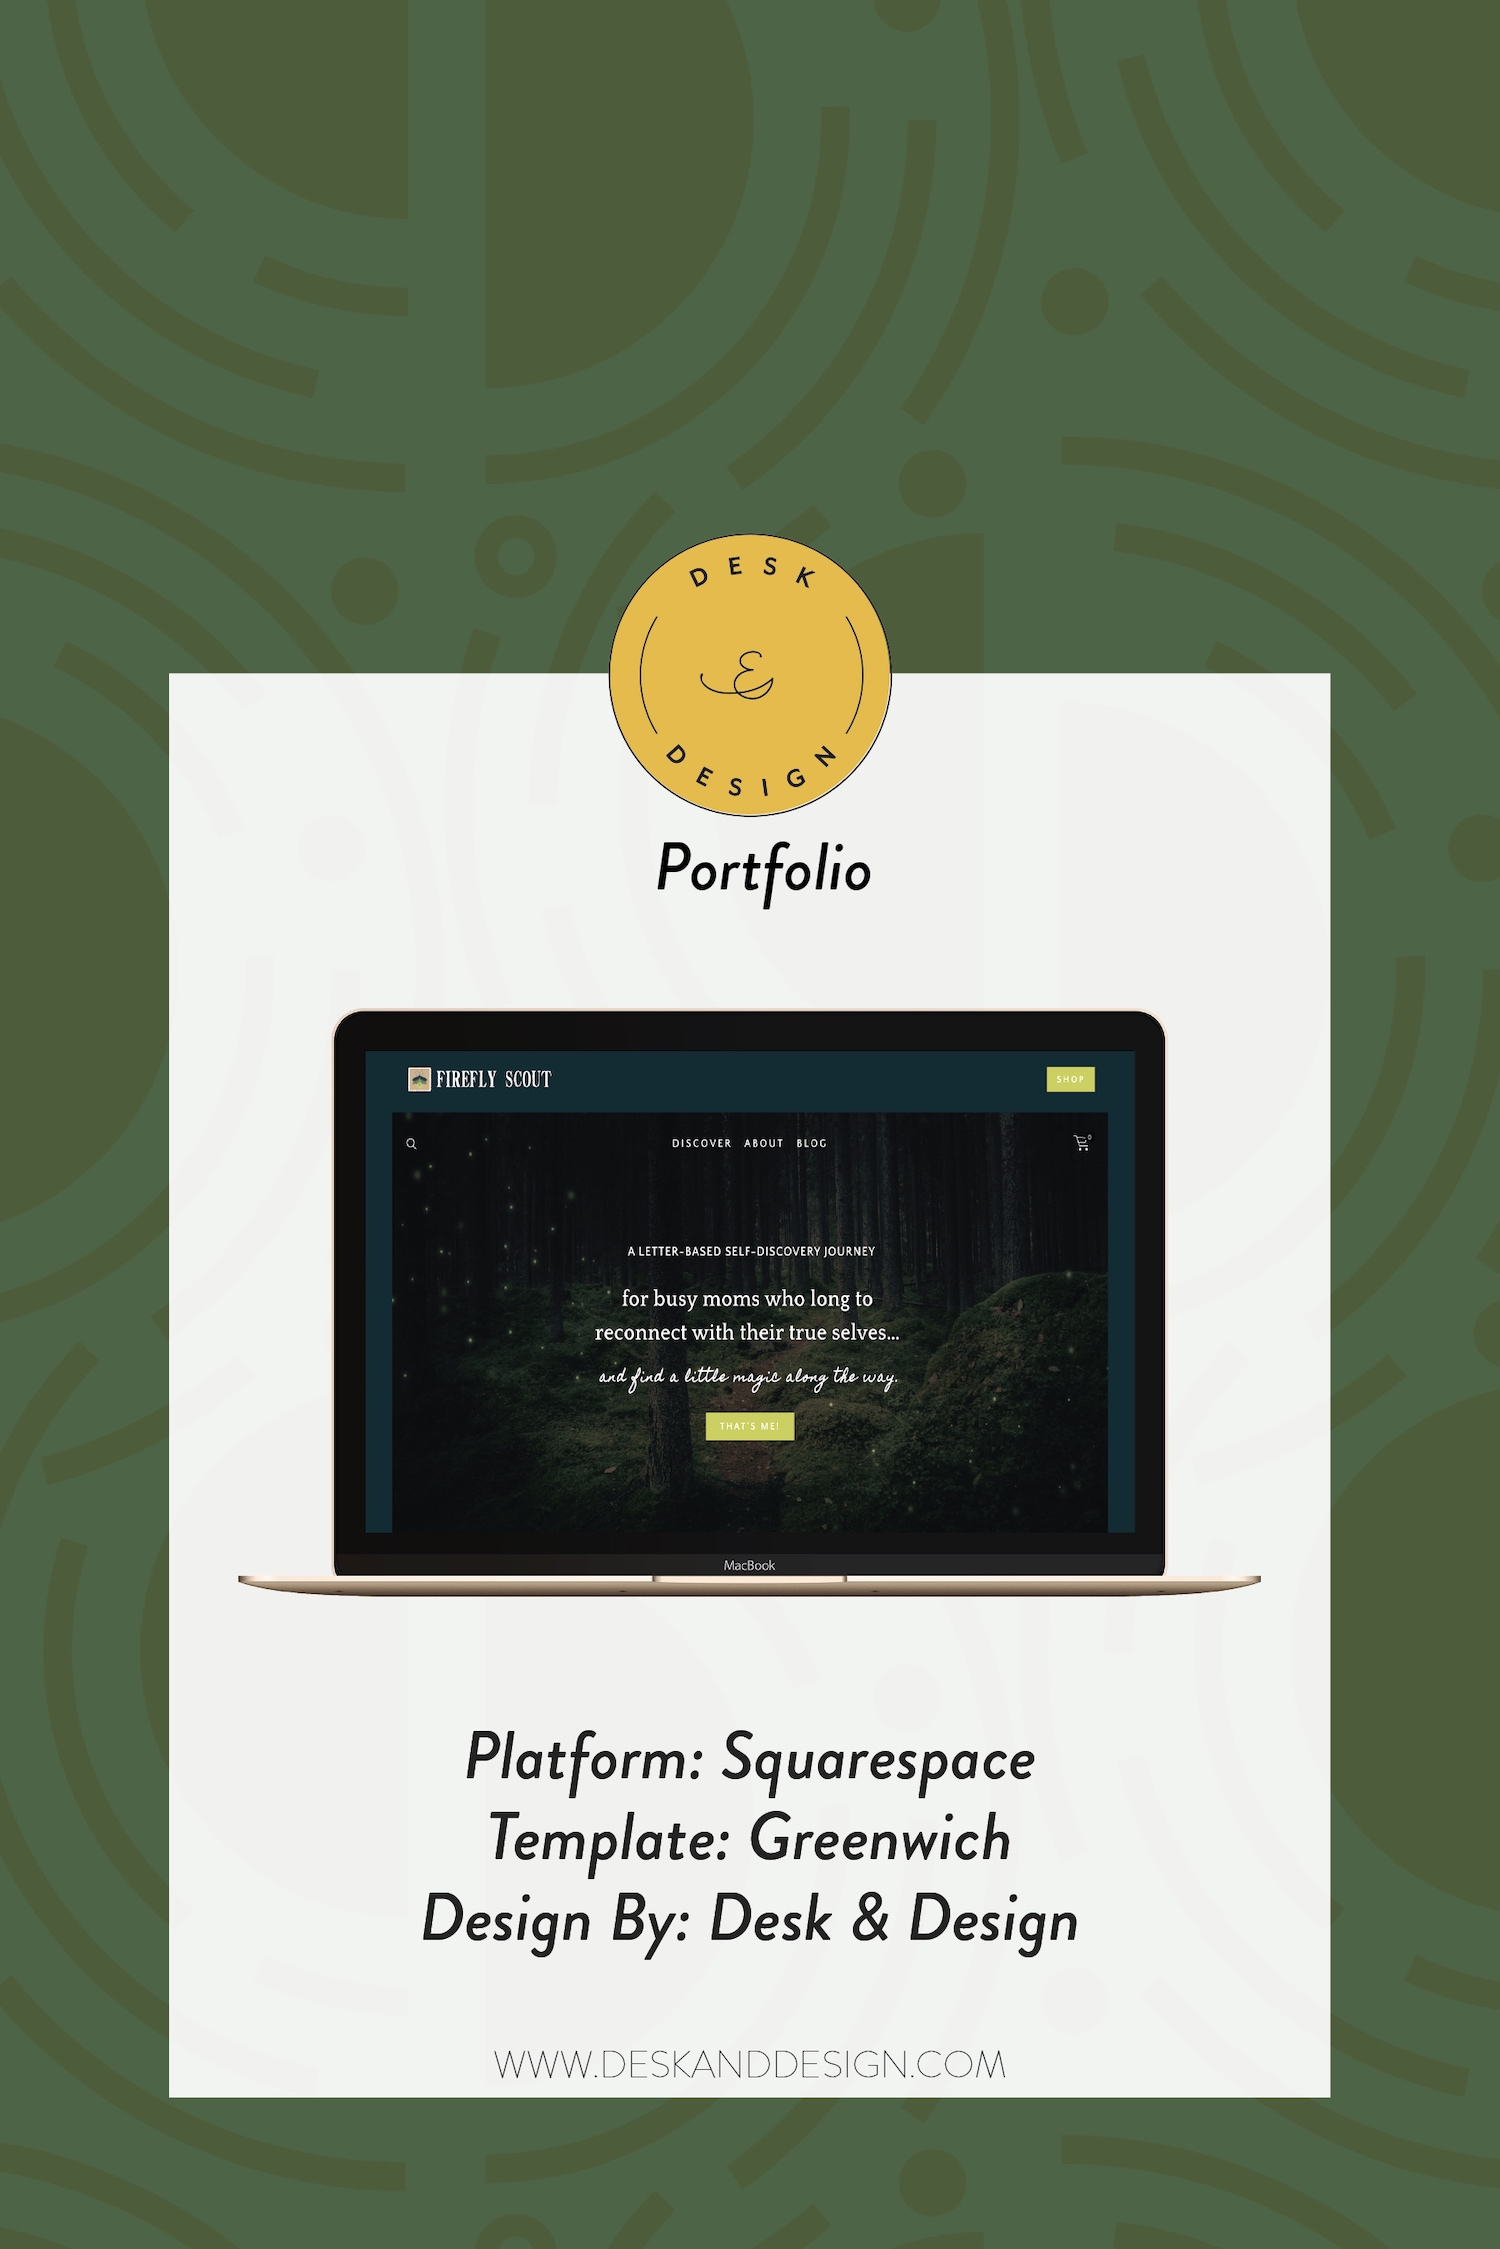 Squarespace Website Design by Desk & Design for Firefly Scout. Greenwich Template